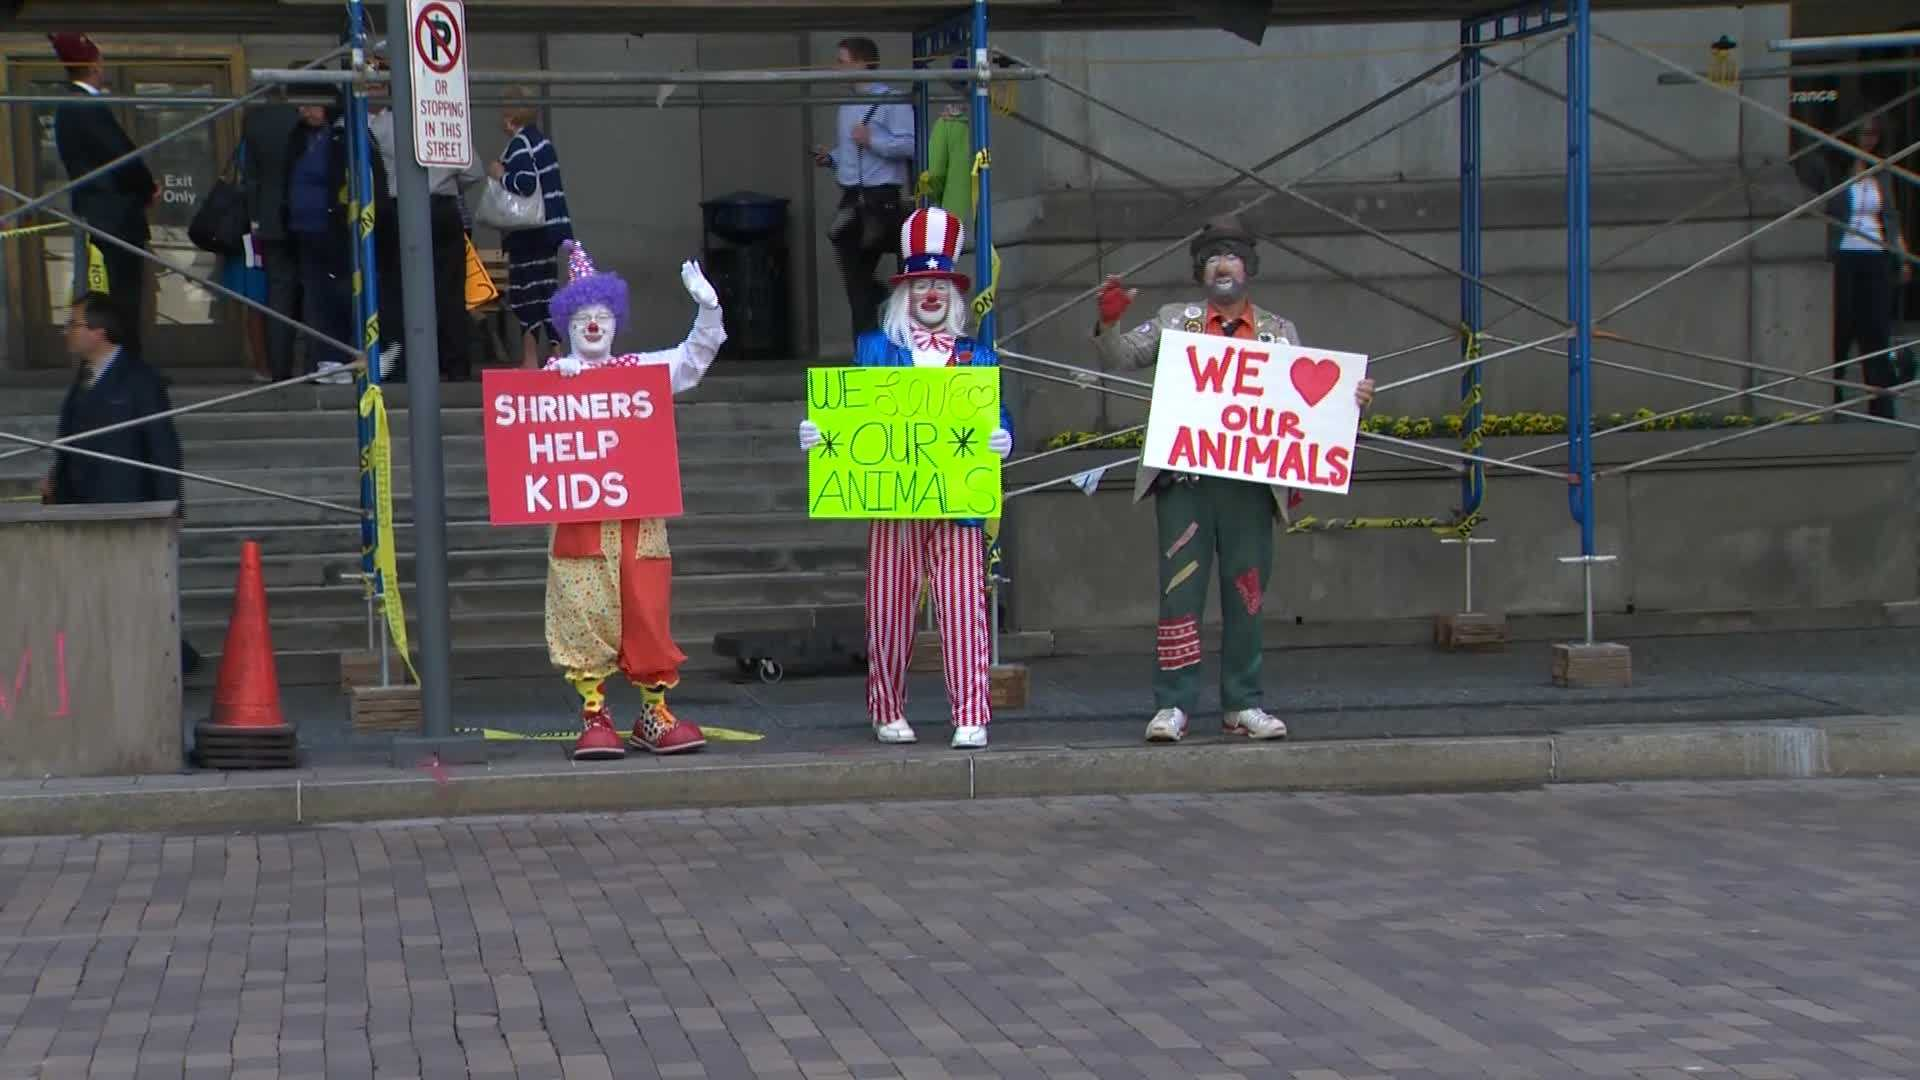 Clowns took to the streets to show opposition to legislation that would ban wild animal performances like the ones typically seen at the Shrine Circus.